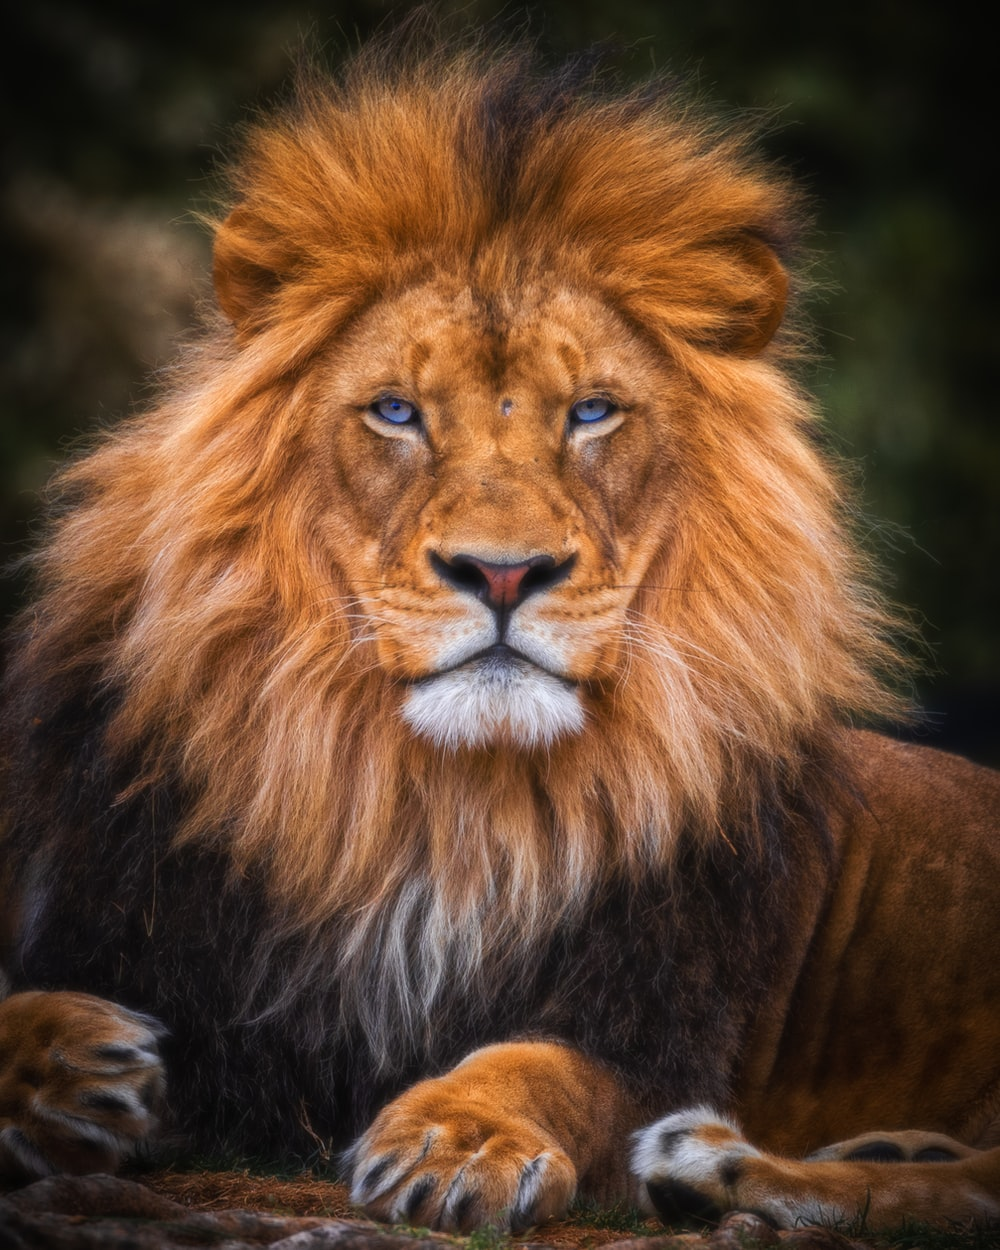 20+ Lion Pictures & Images   Download Free Images & Stock Photos ...